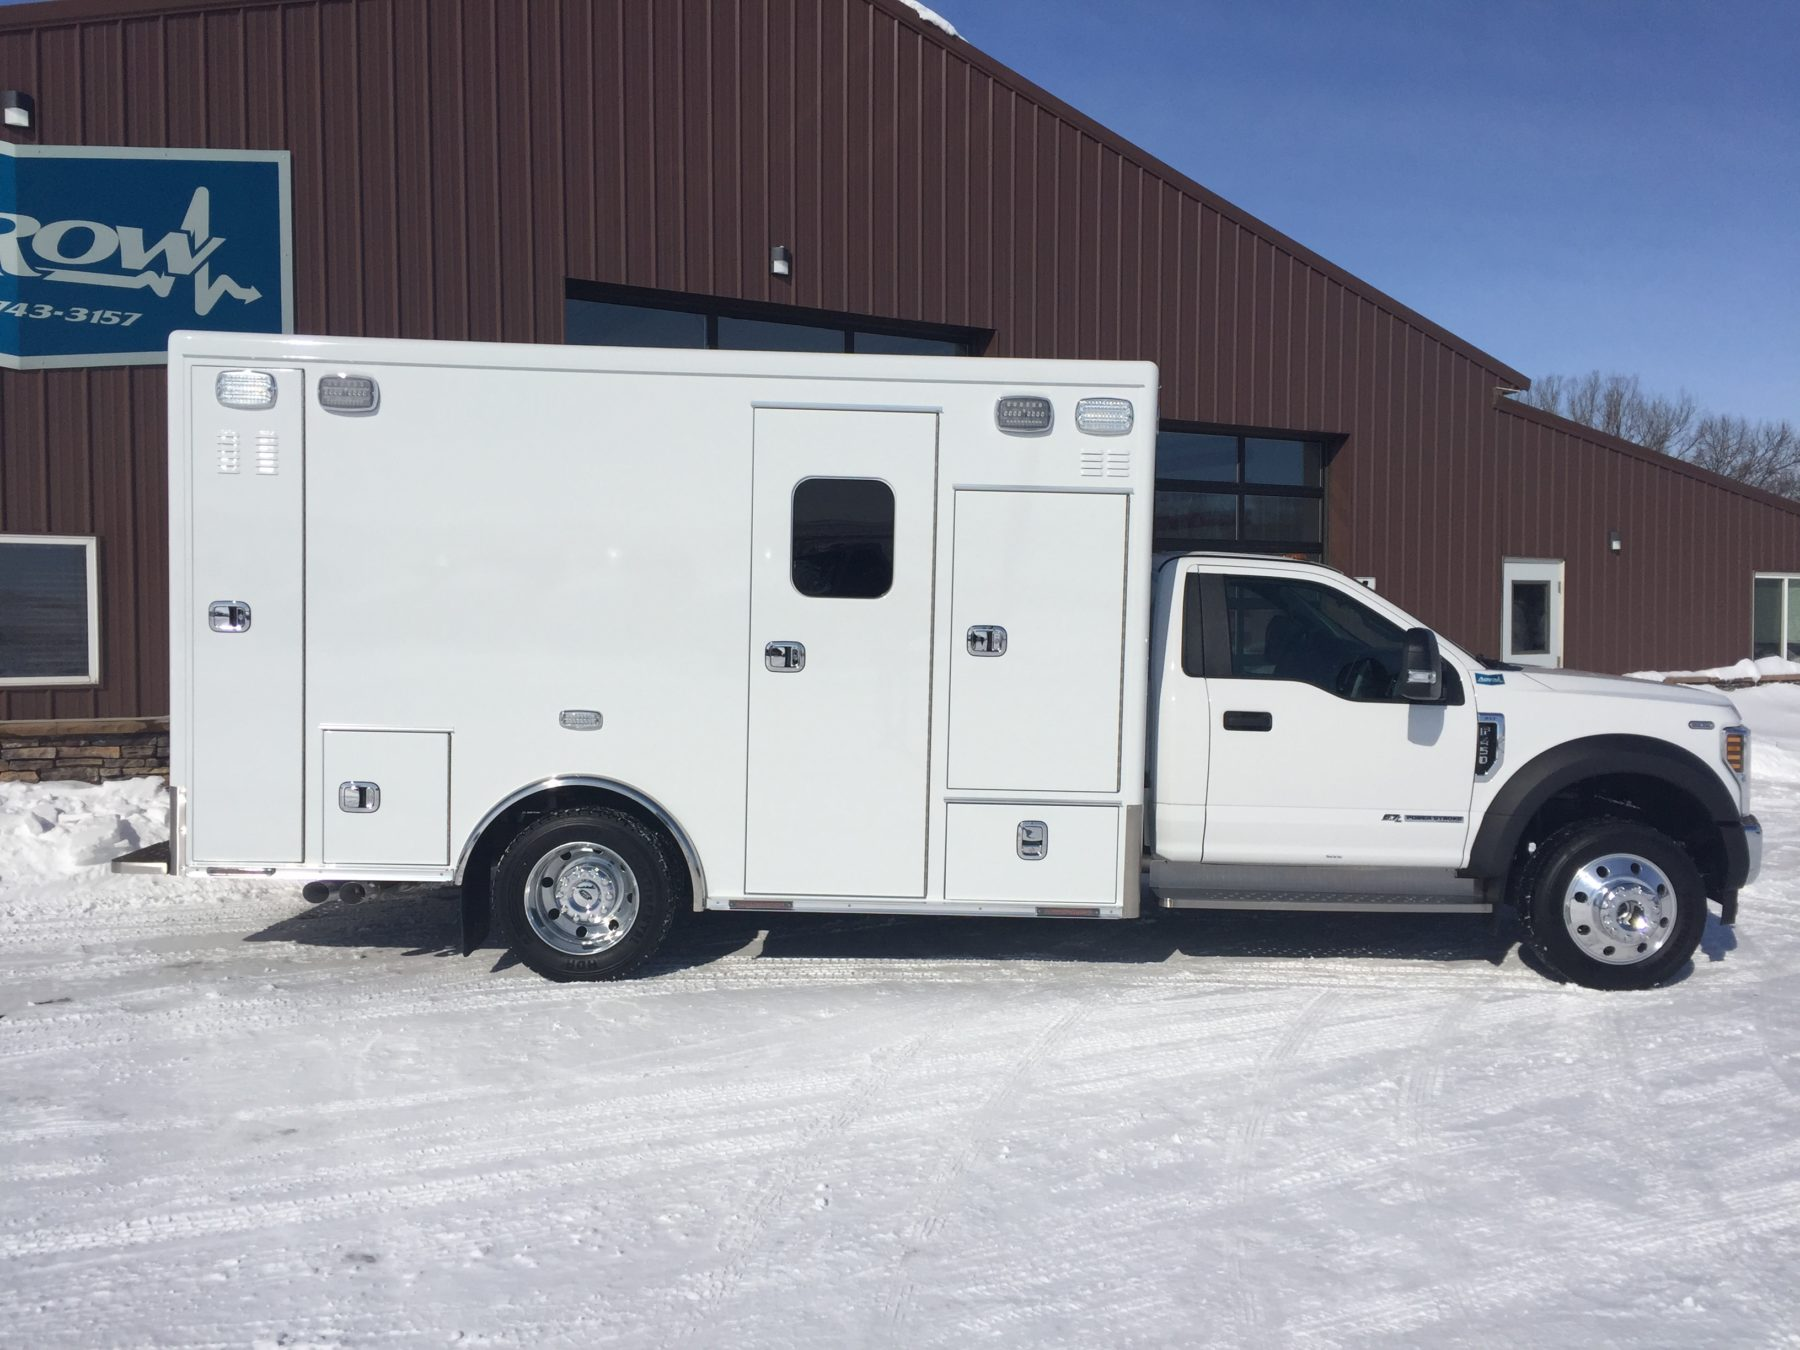 2019 Ford F450 4x4 Heavy Duty Ambulance For Sale – Picture 4